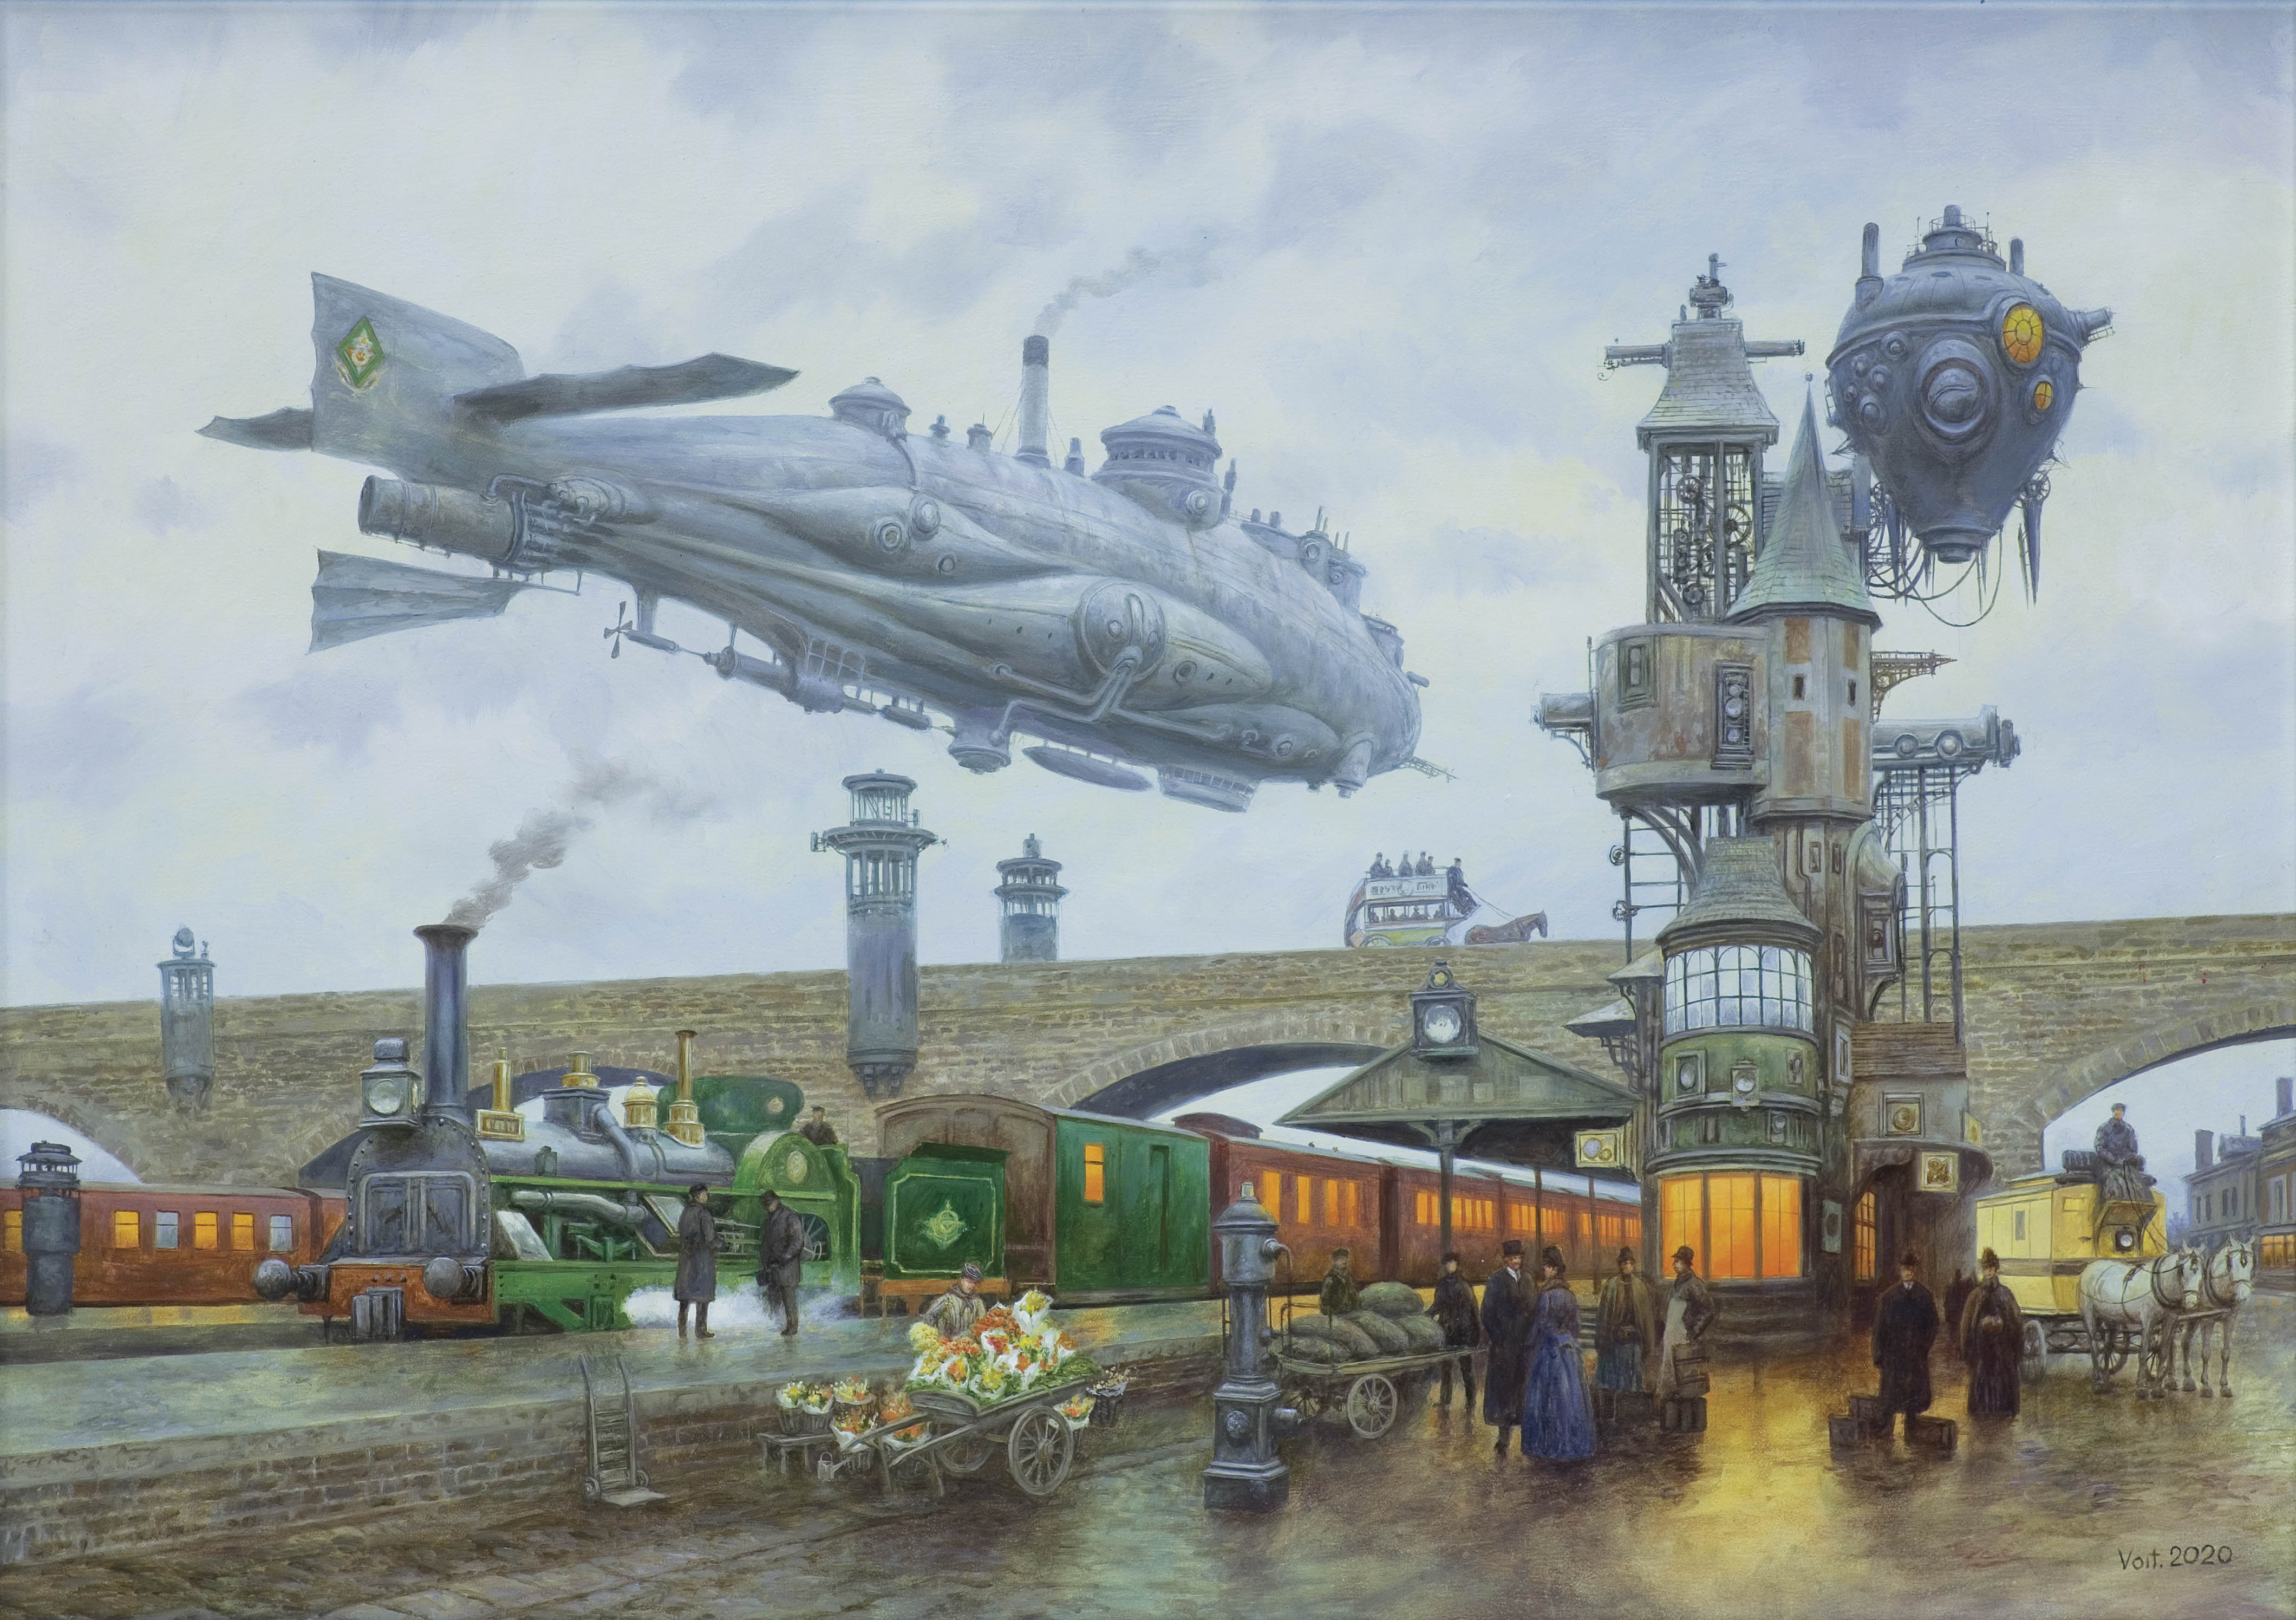 ARRIVAL OF THE TRAIN, 2020